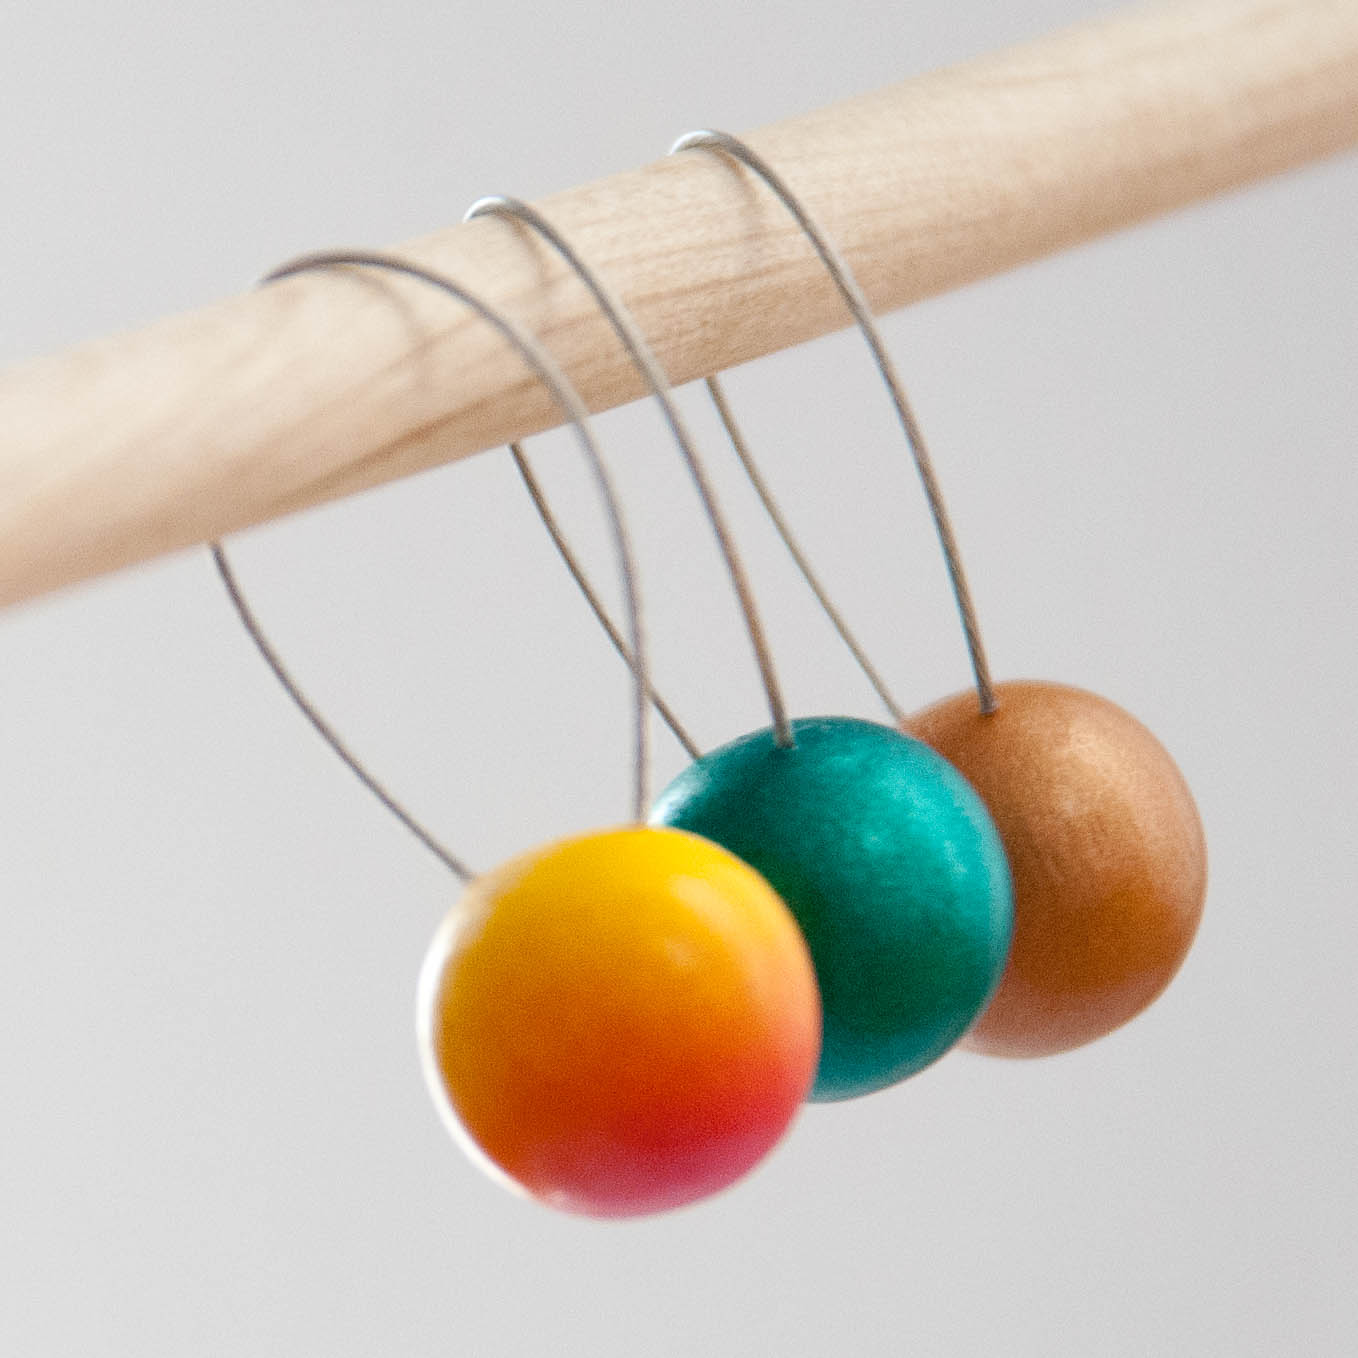 Knitting Using Stitch Markers : Stitch markers for knitting - knit affair